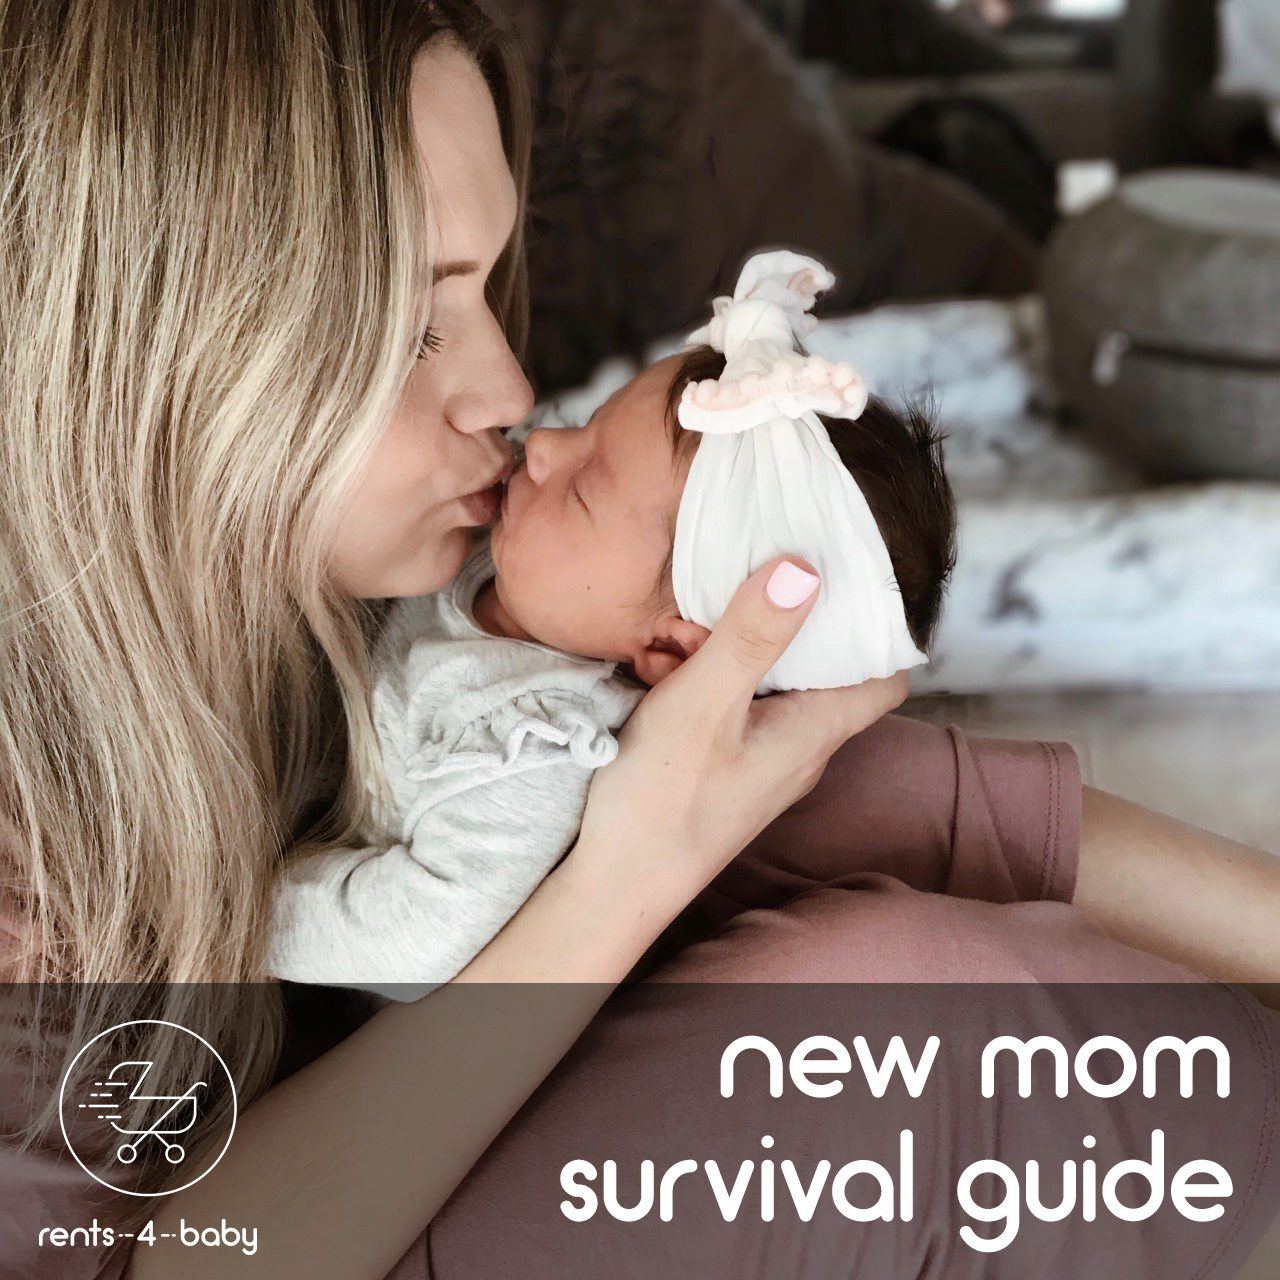 NEW MOM SURVIVAL GUIDE: